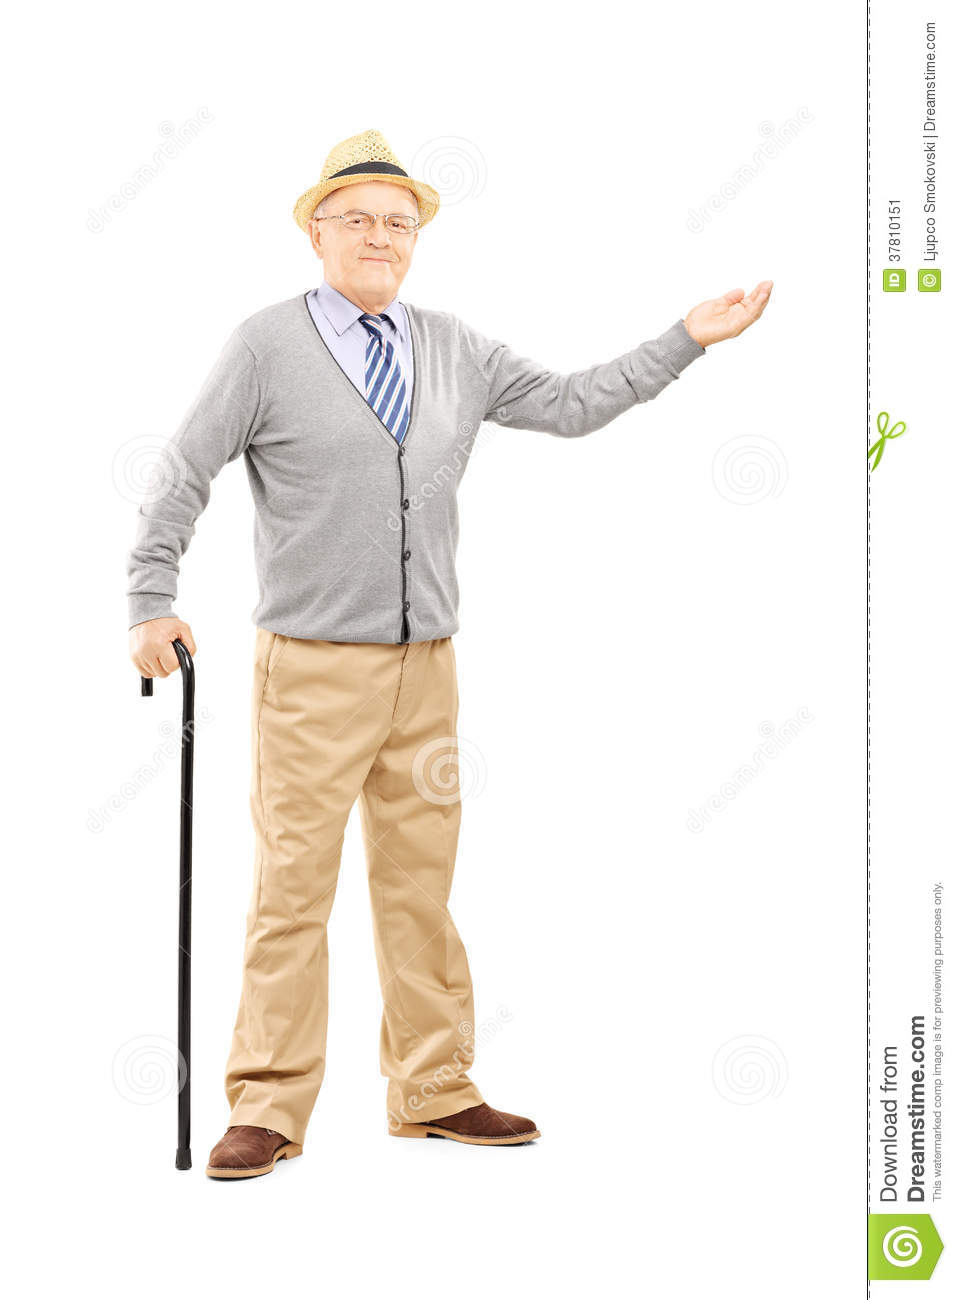 Old Man With Cane Gesturing With Hand Stock Image - Image ...